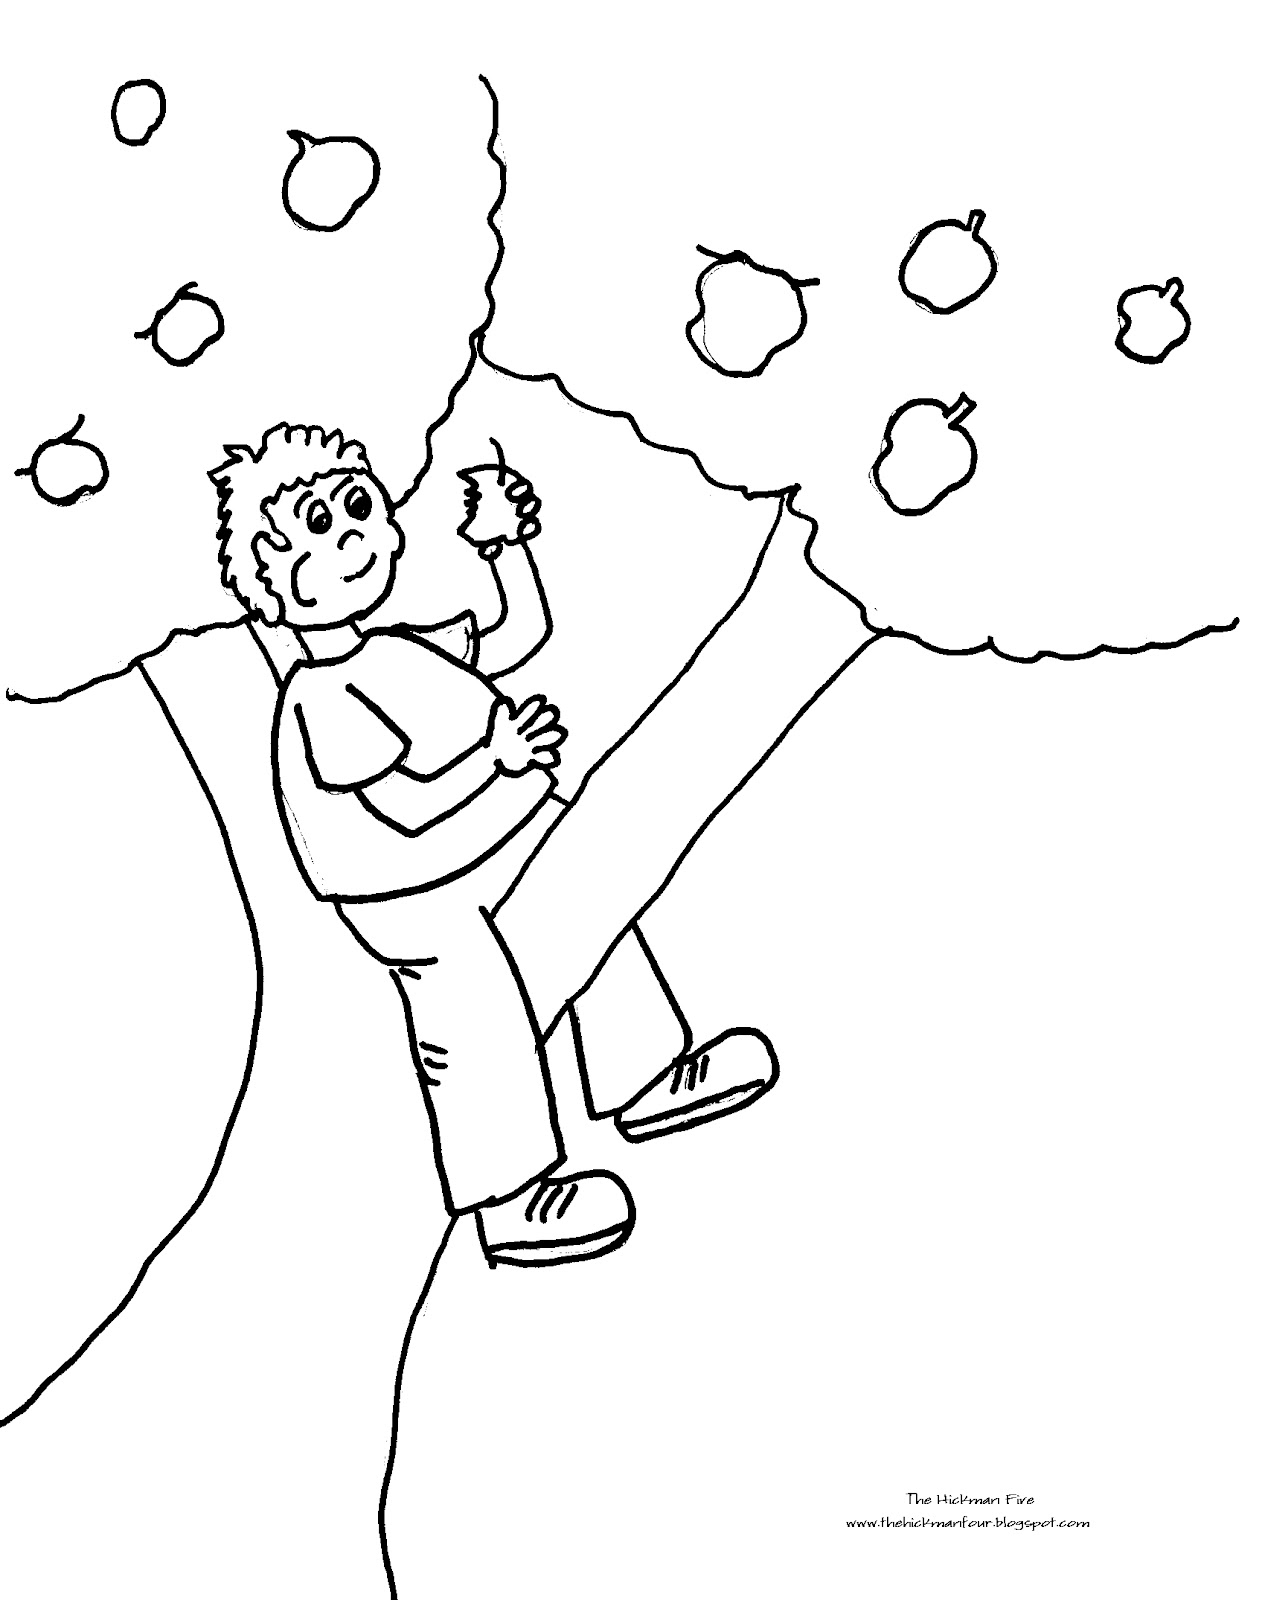 apple tree coloring pages - photo#35